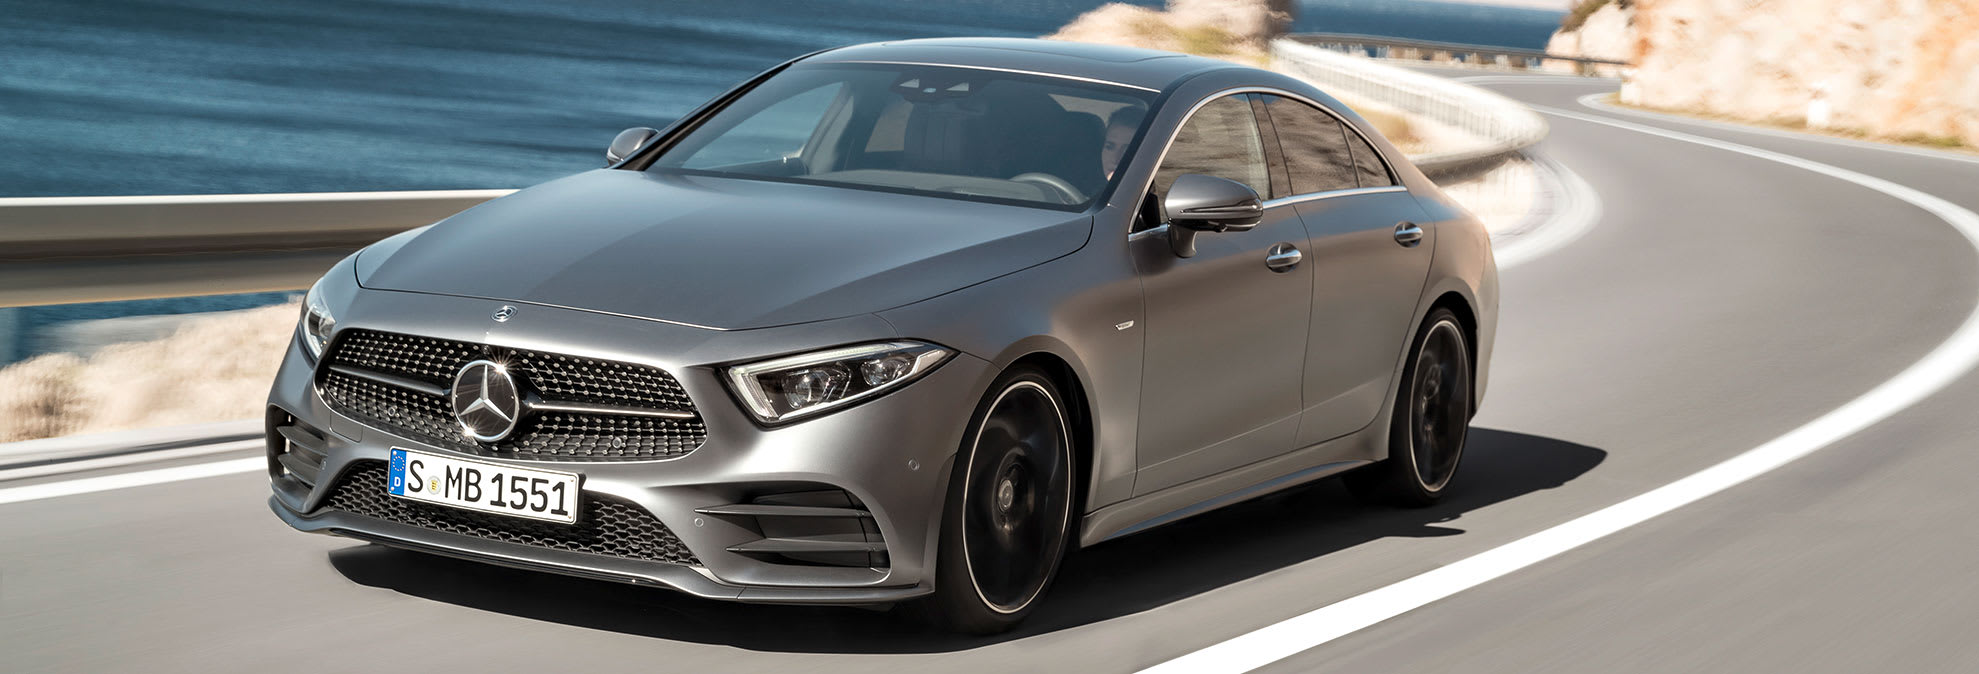 Preview New And Redesigned 2019 Luxury Cars: 2019 Mercedes-Benz CLS Preview